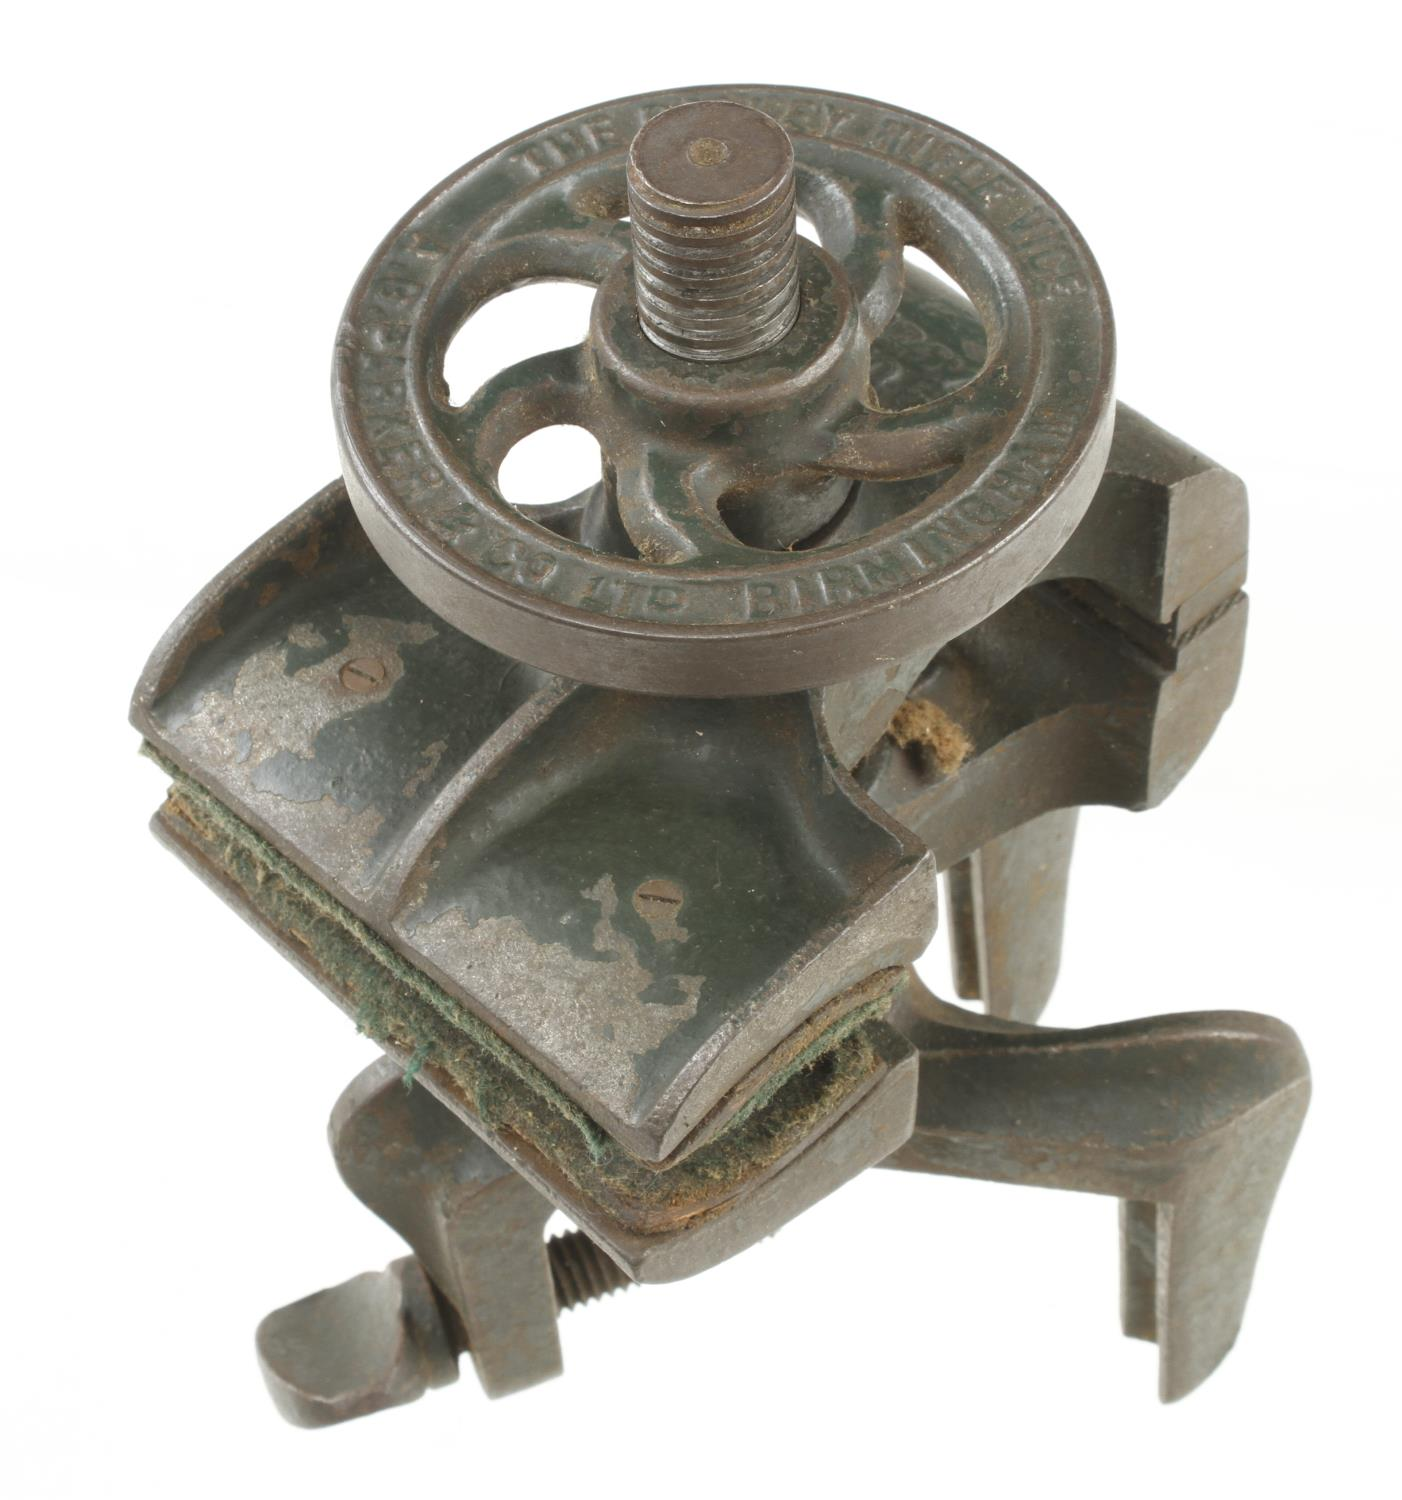 An adjustable vice with two jaws by A.G.PARKER & Co marked The Bristol Rifle Vice G+ - Image 3 of 3